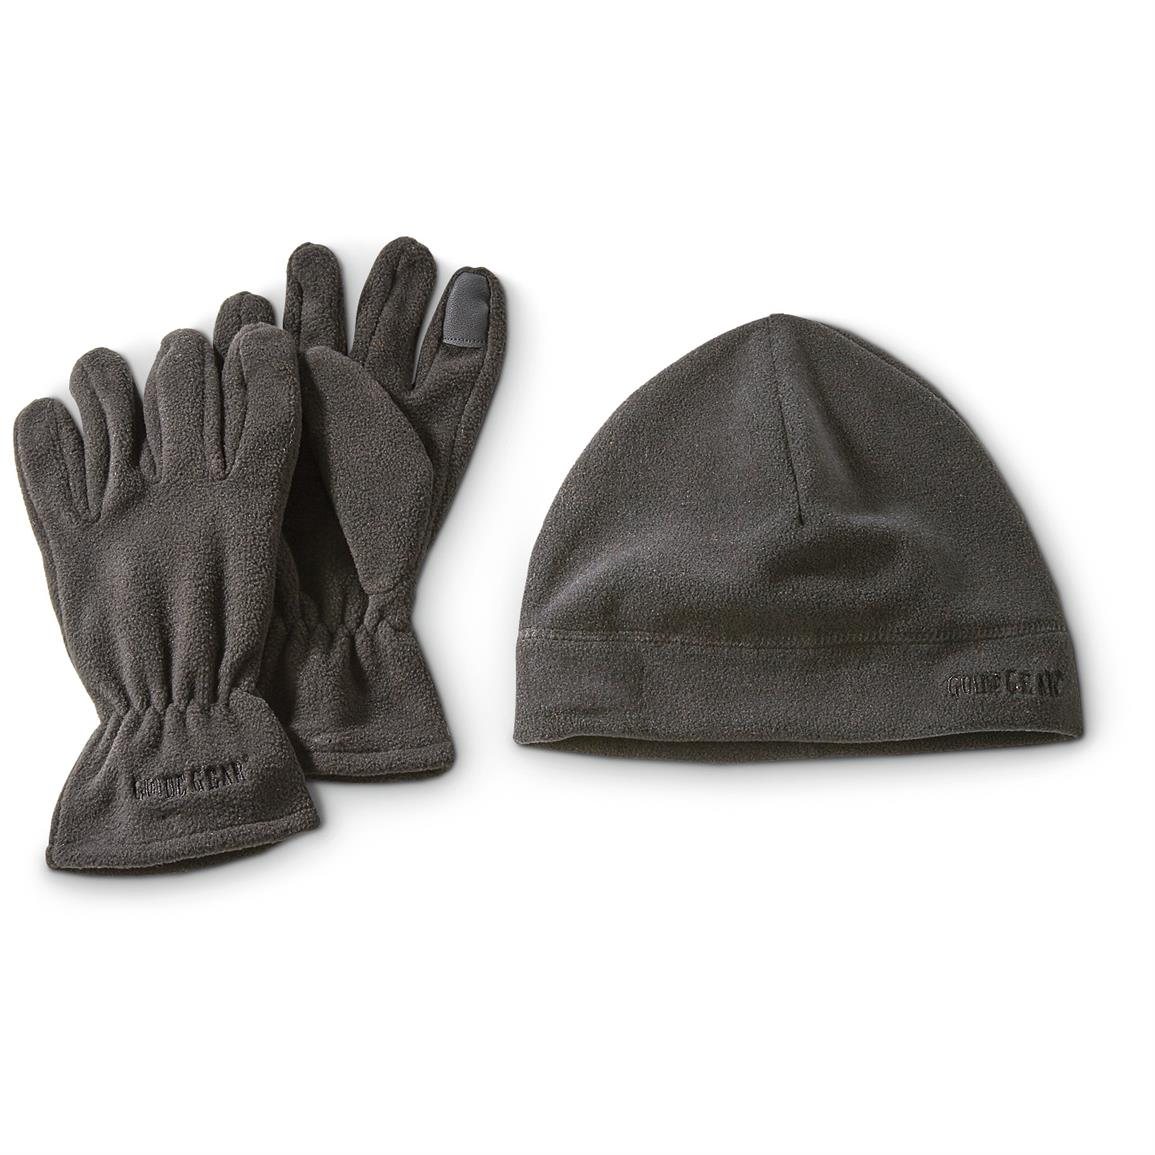 Guide Gear Beanie and Texting Gloves Set, Black